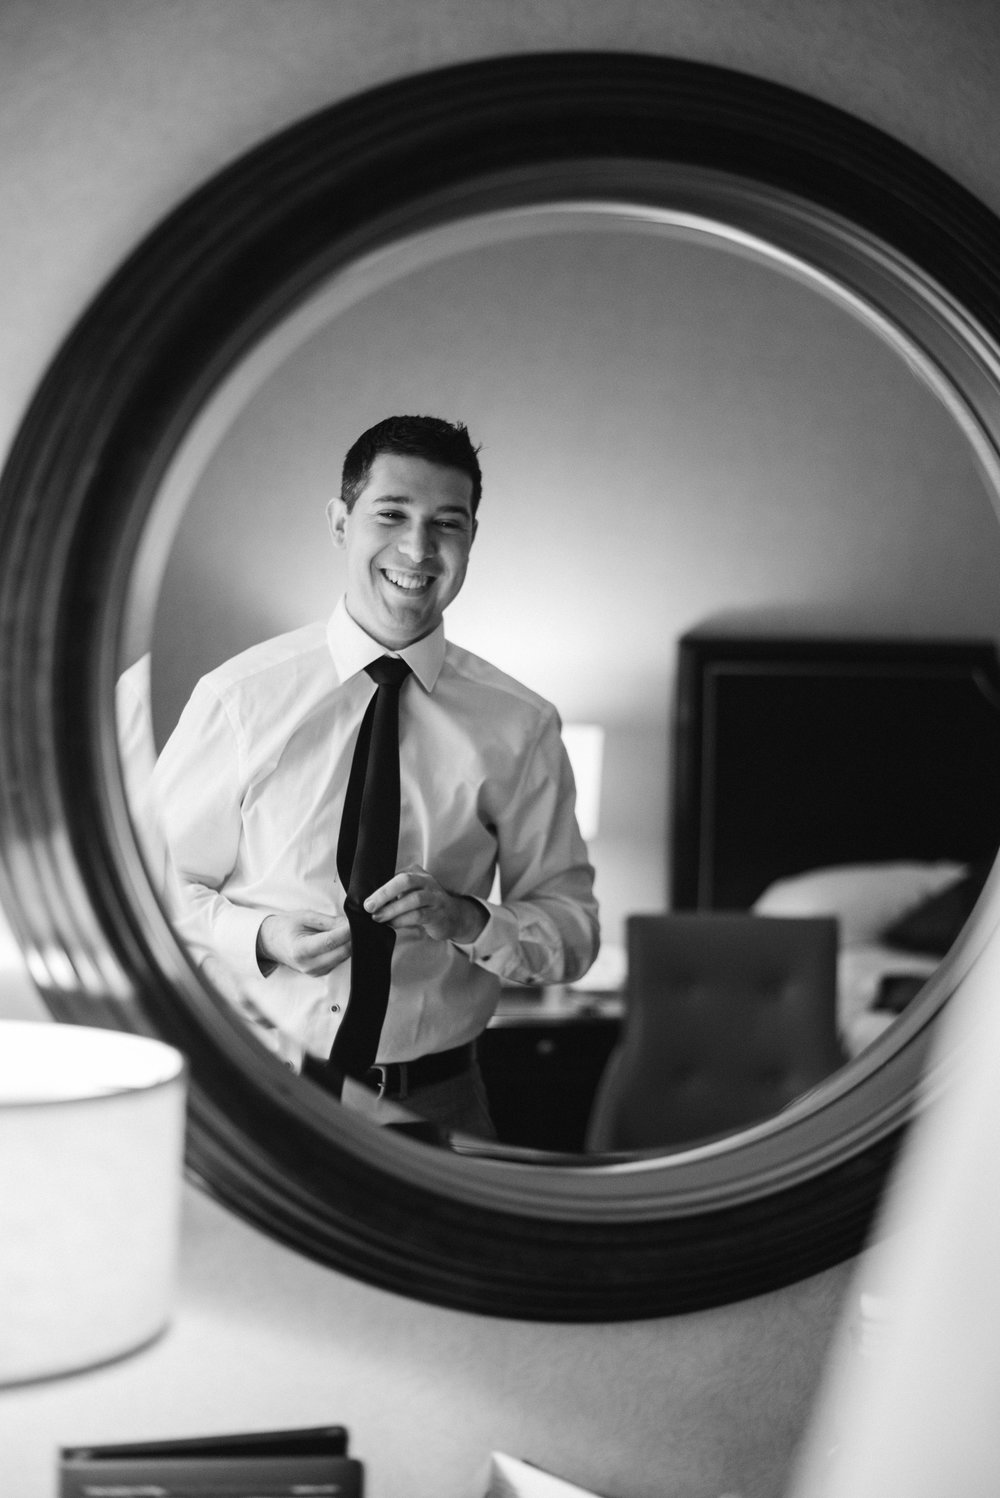 Reflection of groom in mirror getting ready and tying tie at omni severin hotel in Indianapolis, Indiana.